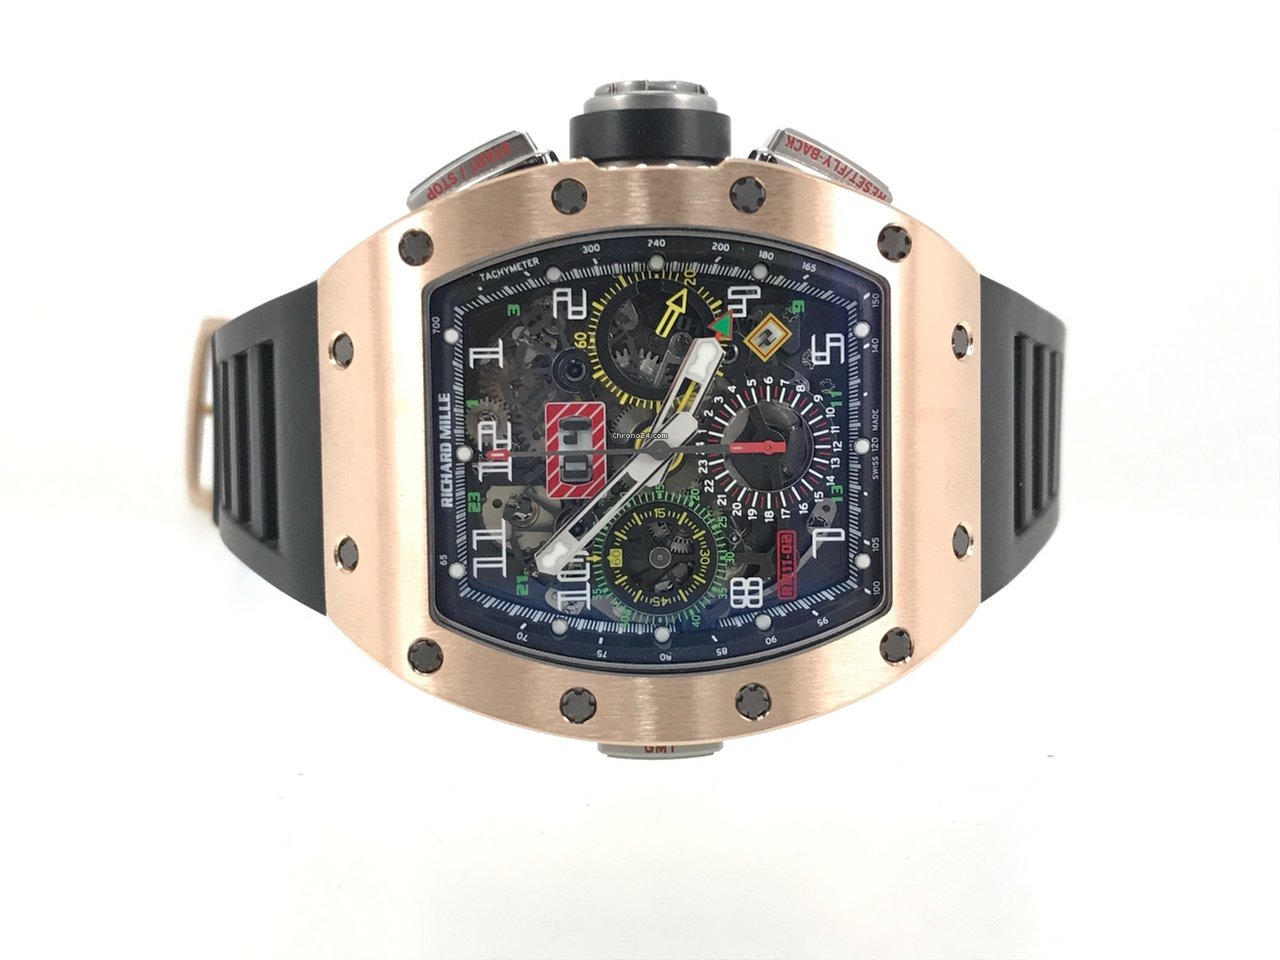 d4e38110854 Richard Mille RM 011 - all prices for Richard Mille RM 011 watches on  Chrono24